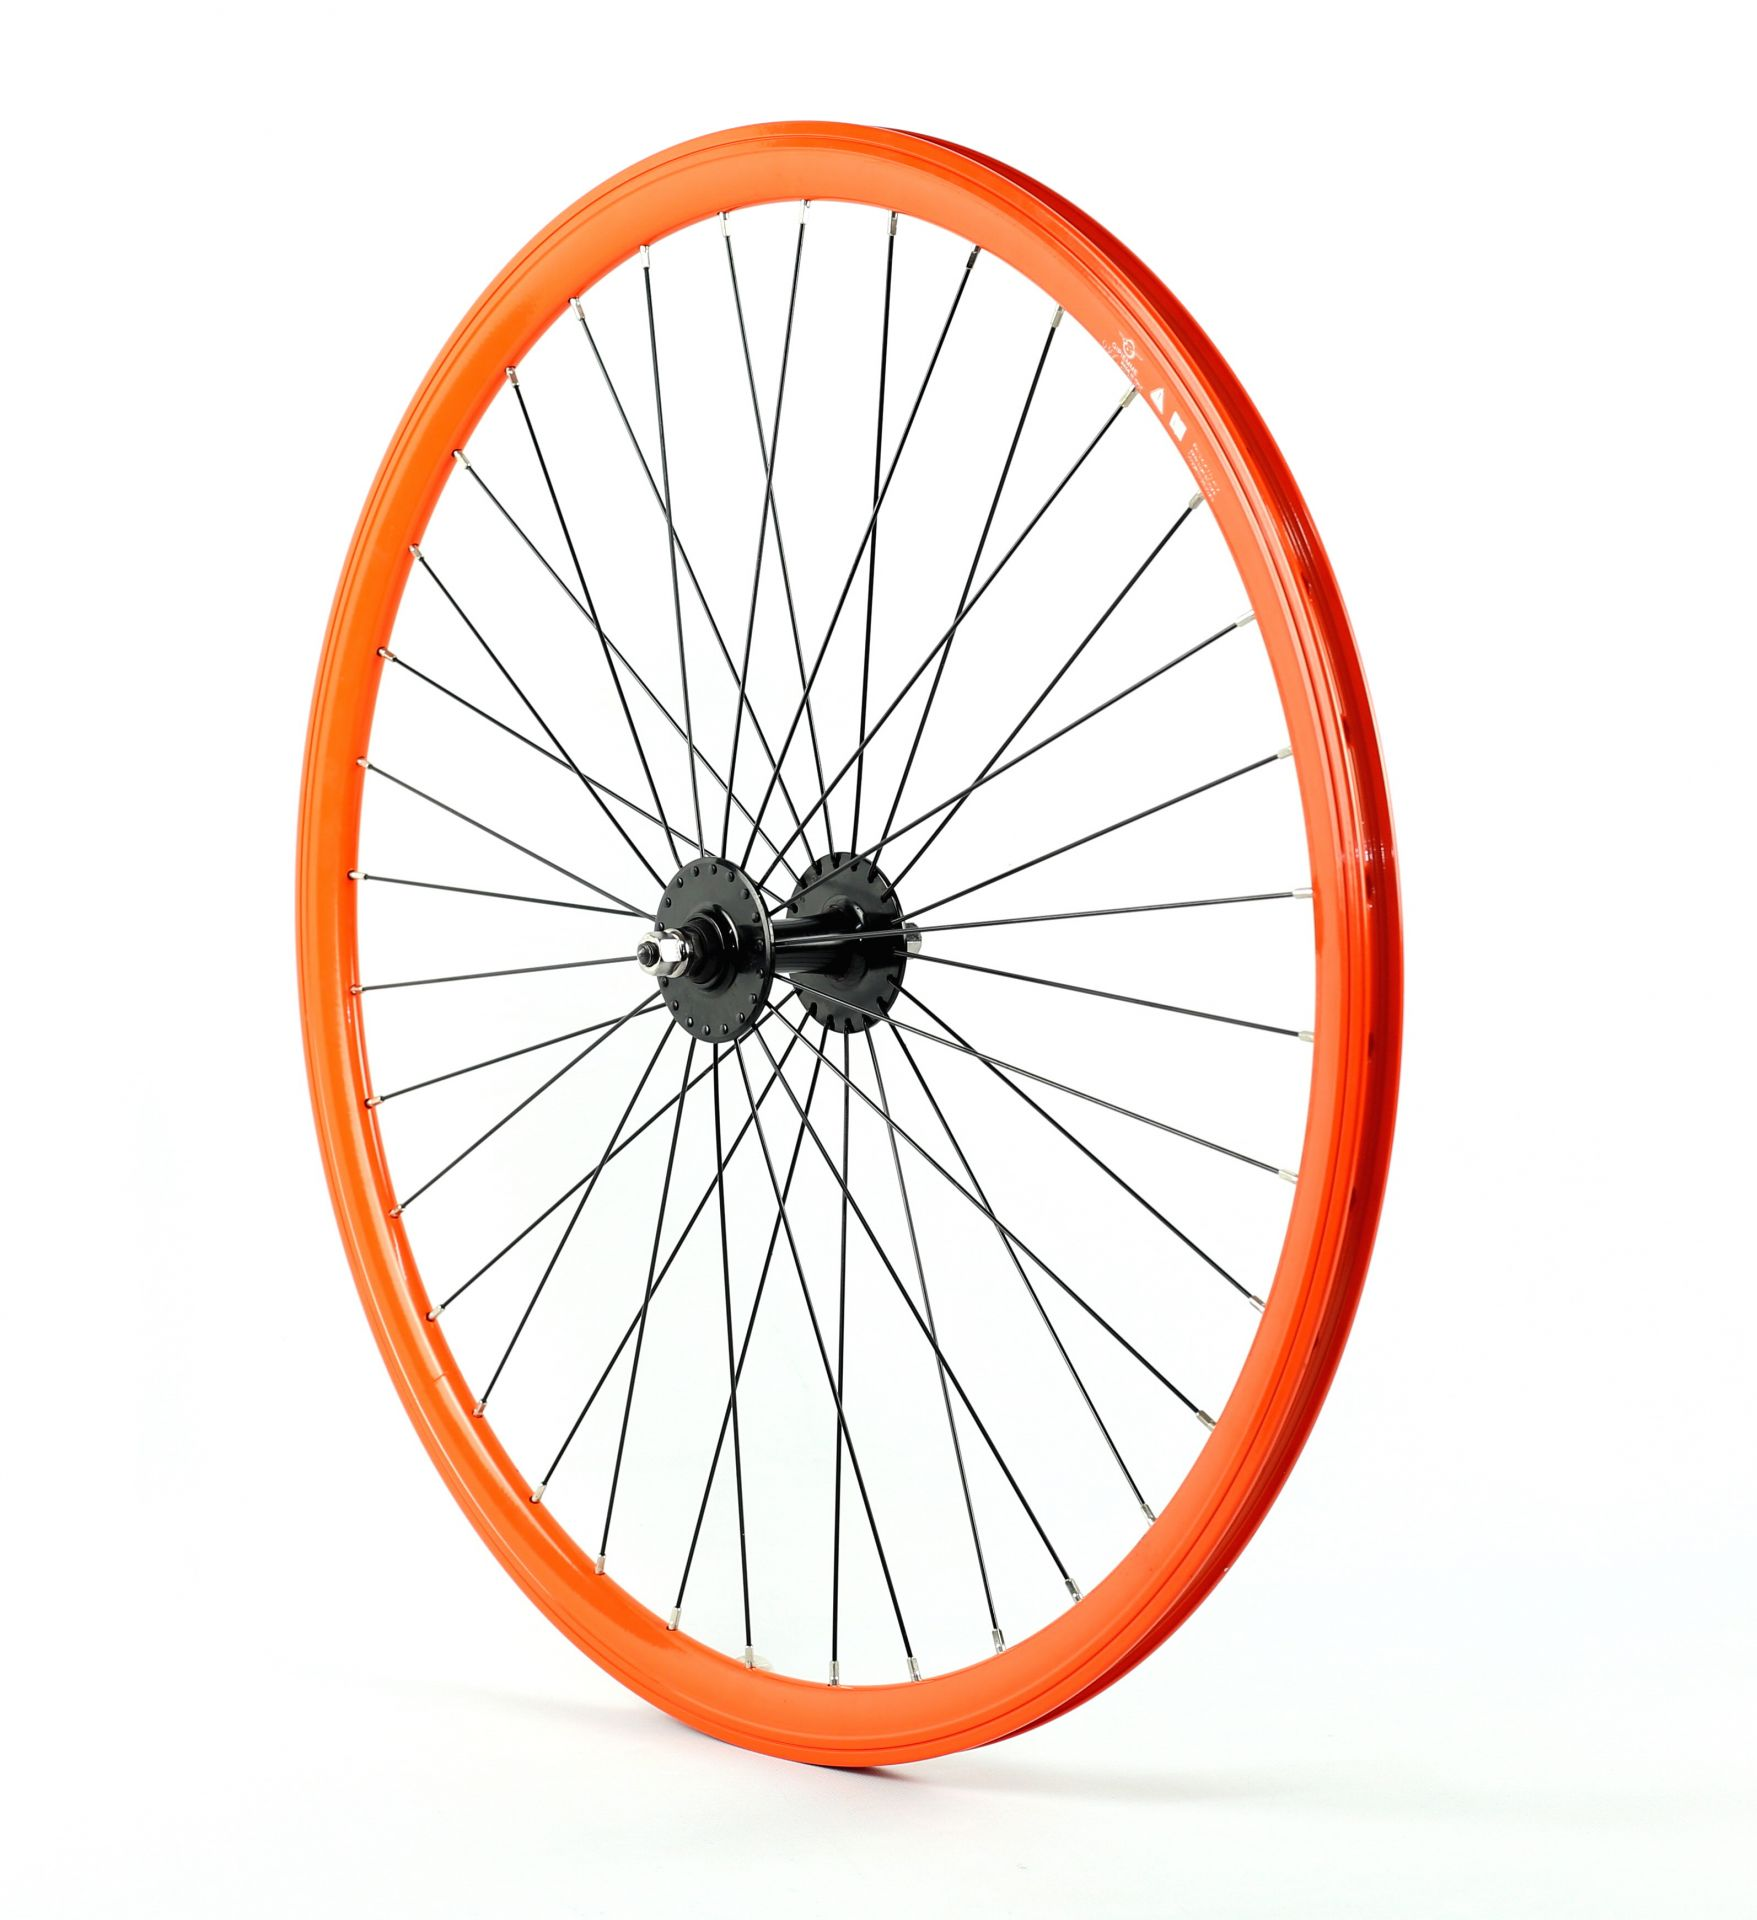 Roue fixie avant 700 Gipiemme 030C hauteur 30 mm Orange